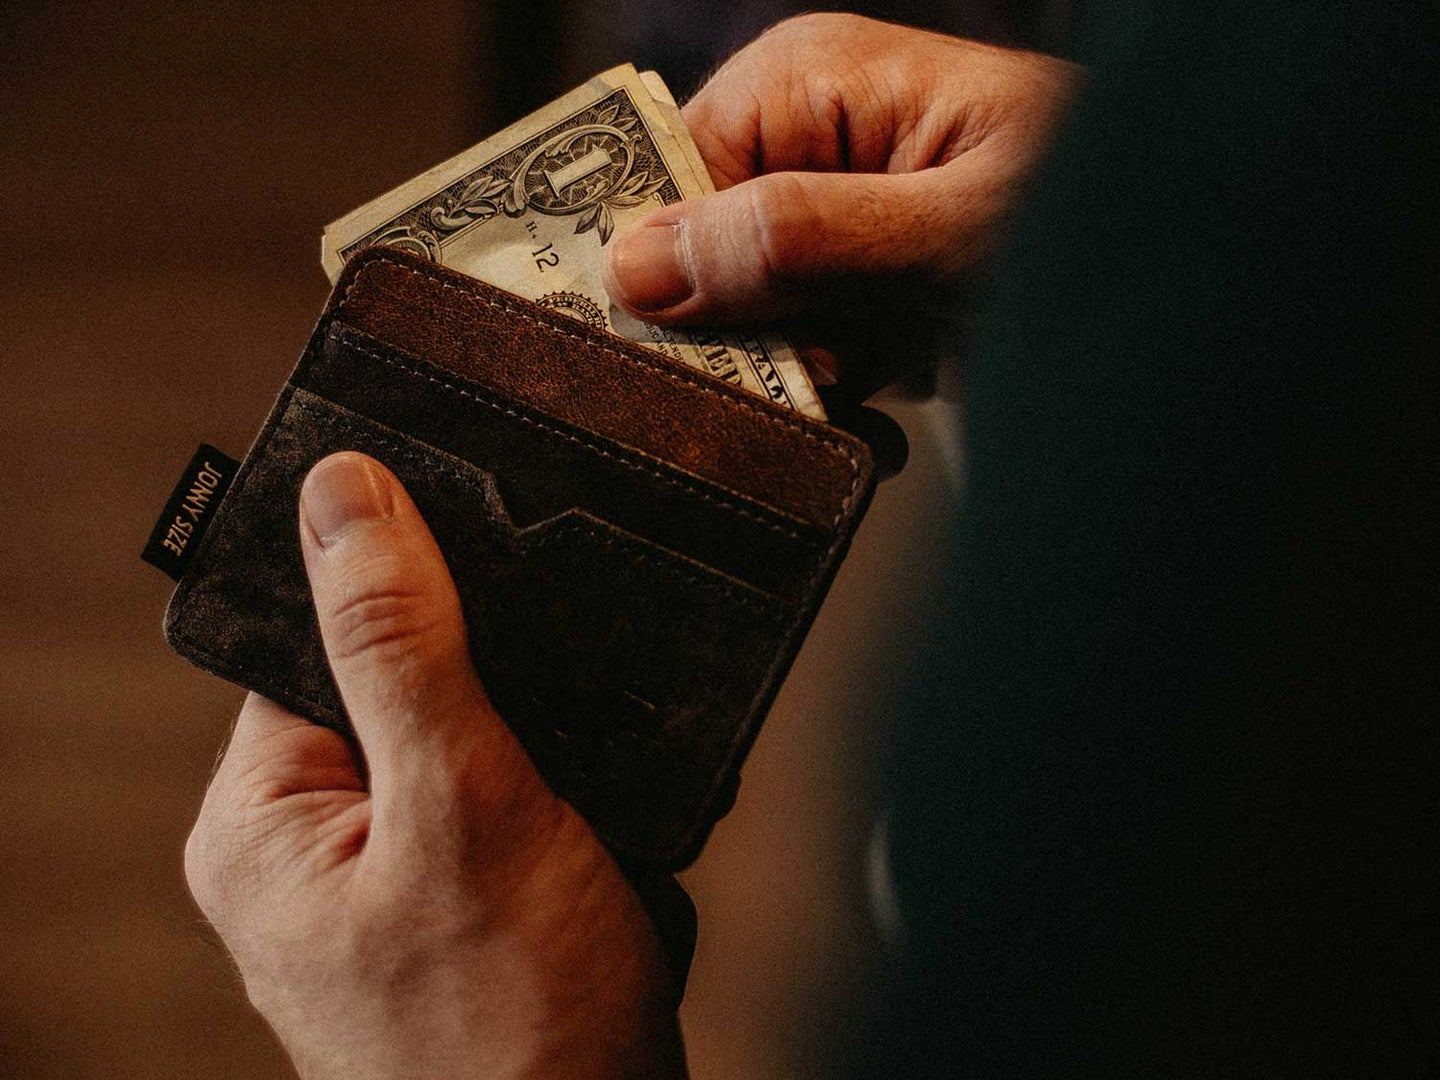 Man removing money from wallet